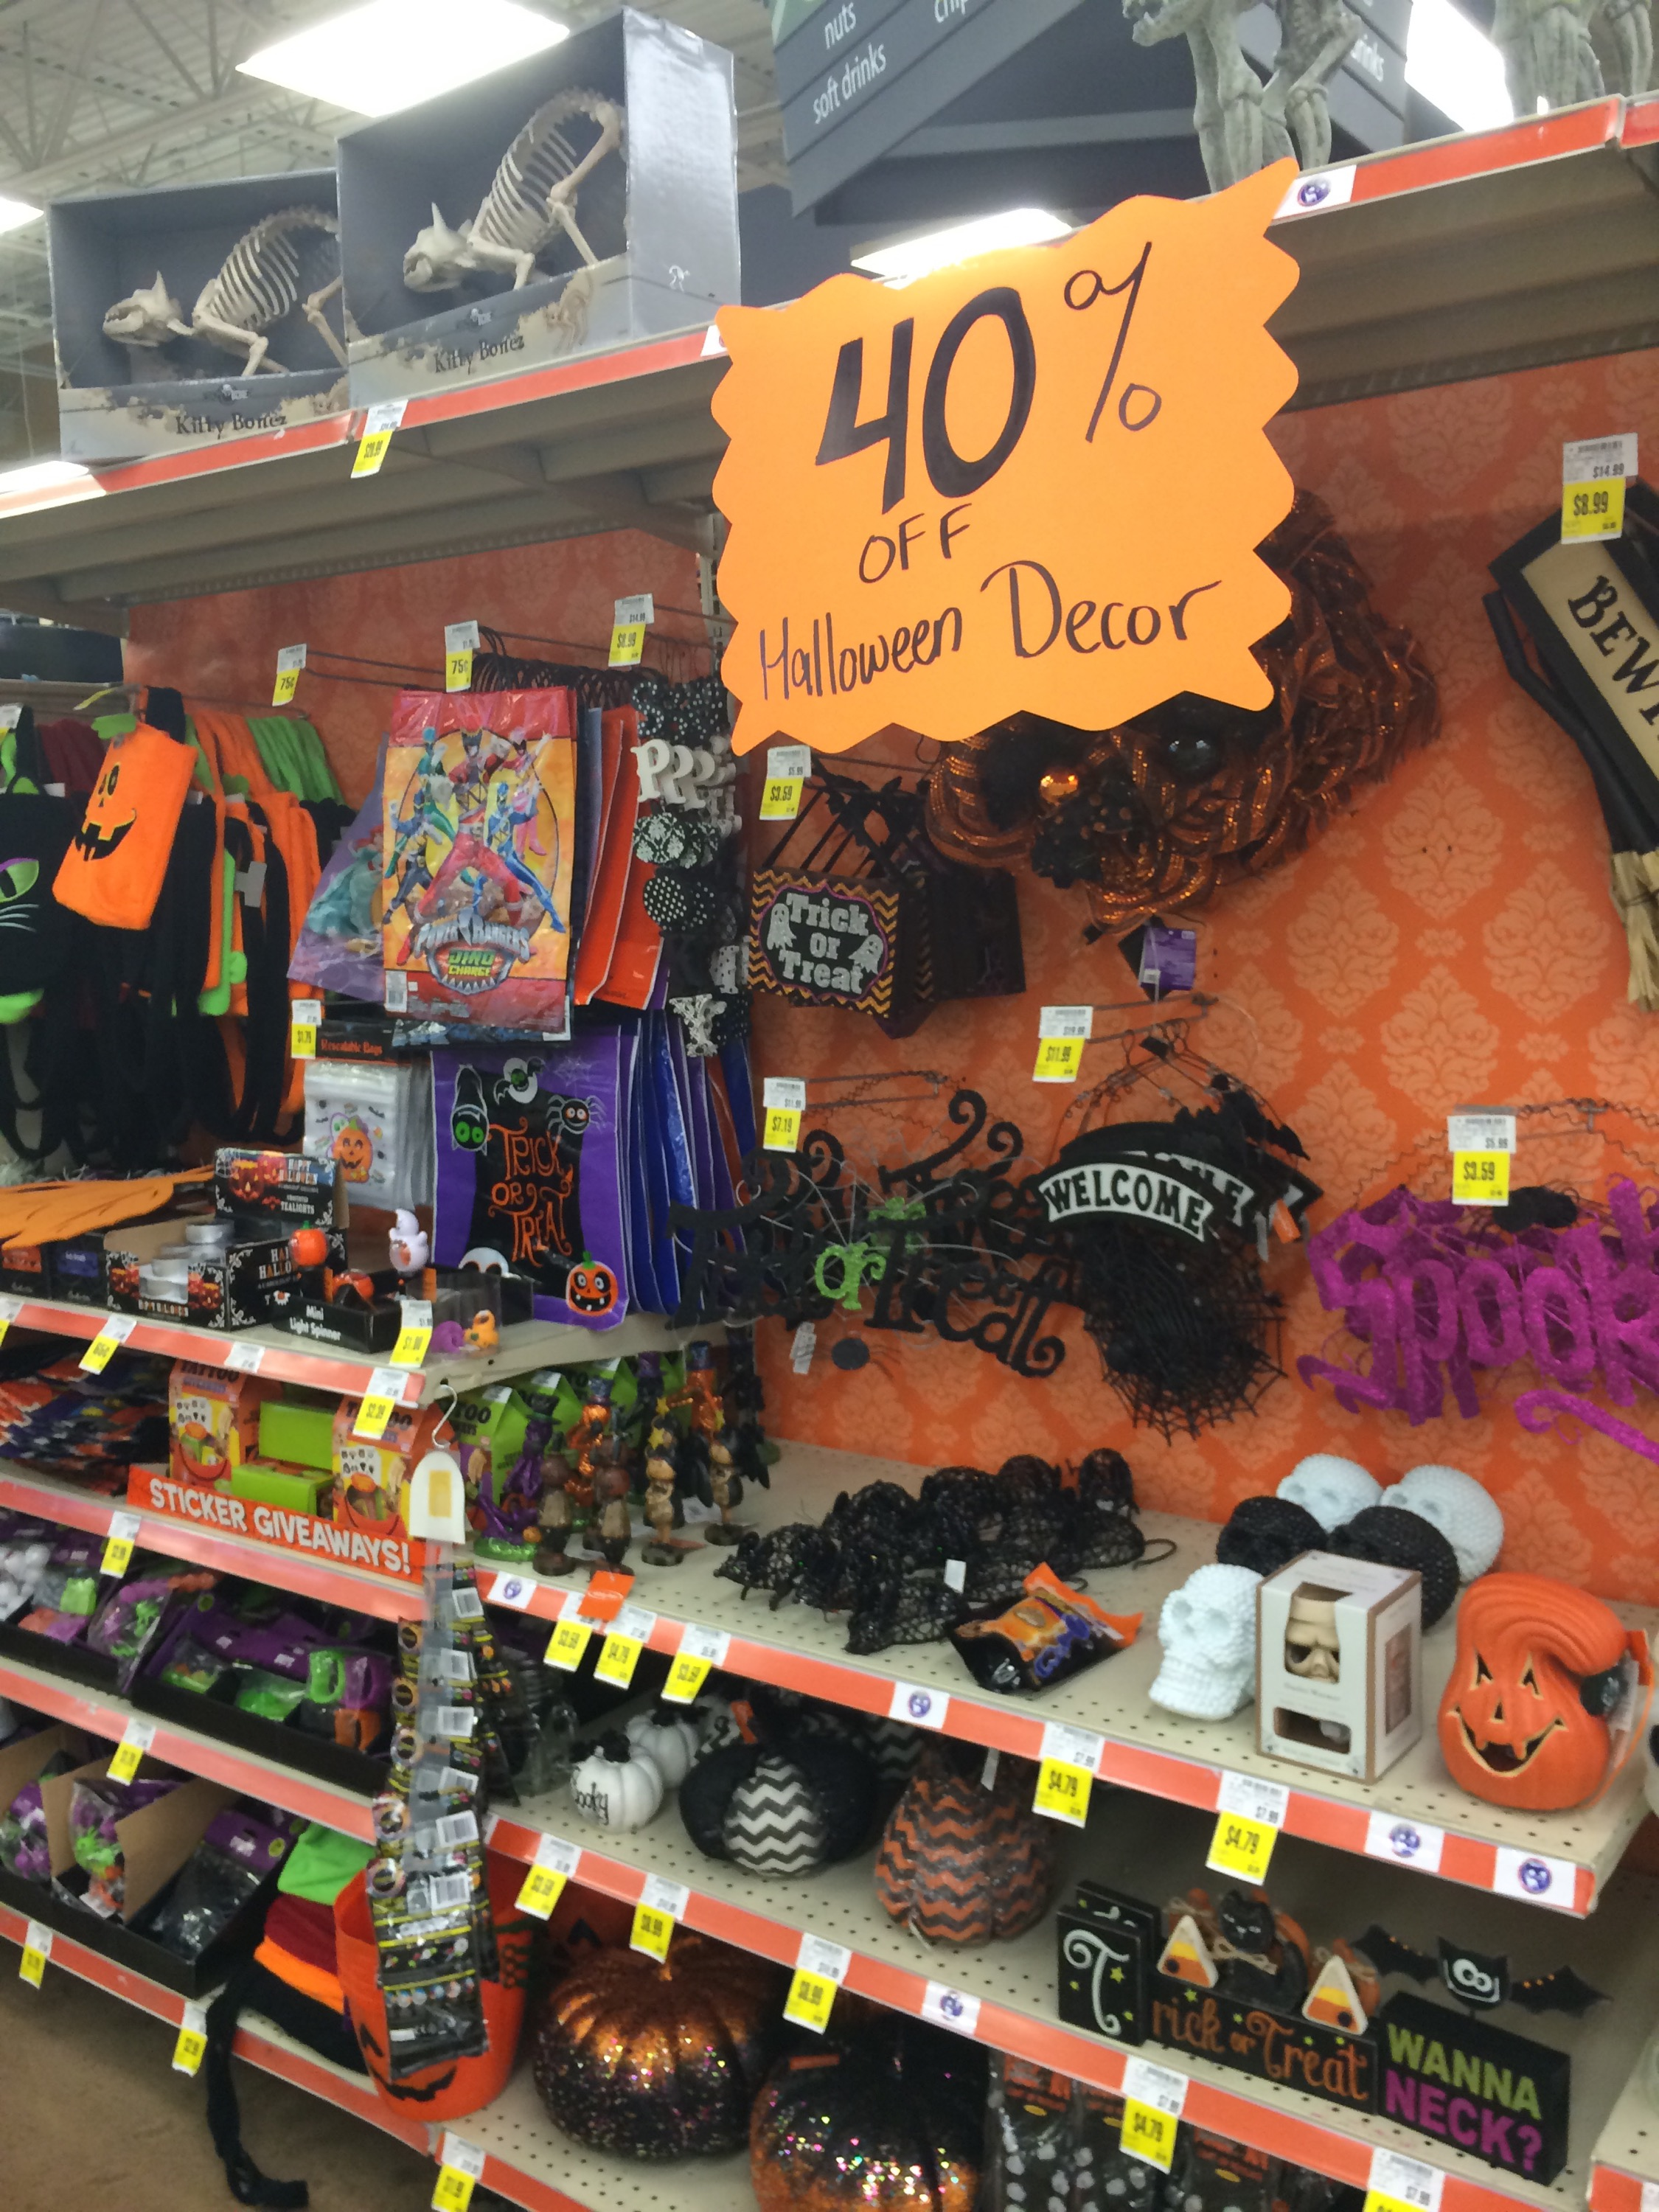 Krogers Halloween 2020 Kroger has 40% off Halloween costumes and Decor   Kroger Coupon Queen